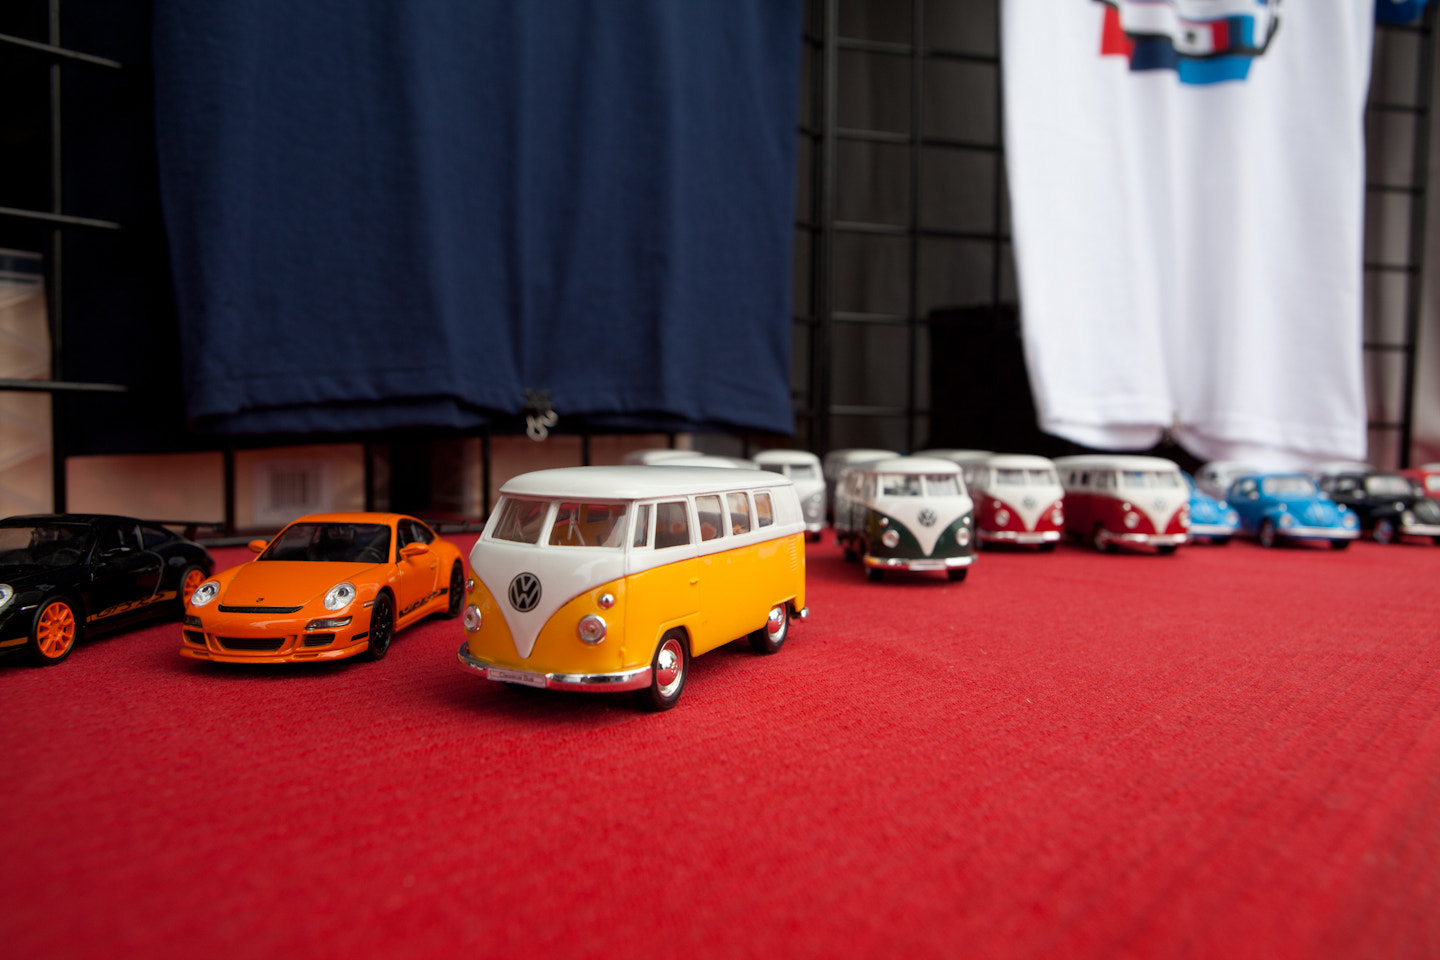 Photograph Toy Cars at Laguna Seca by Walker Dalton on 500px